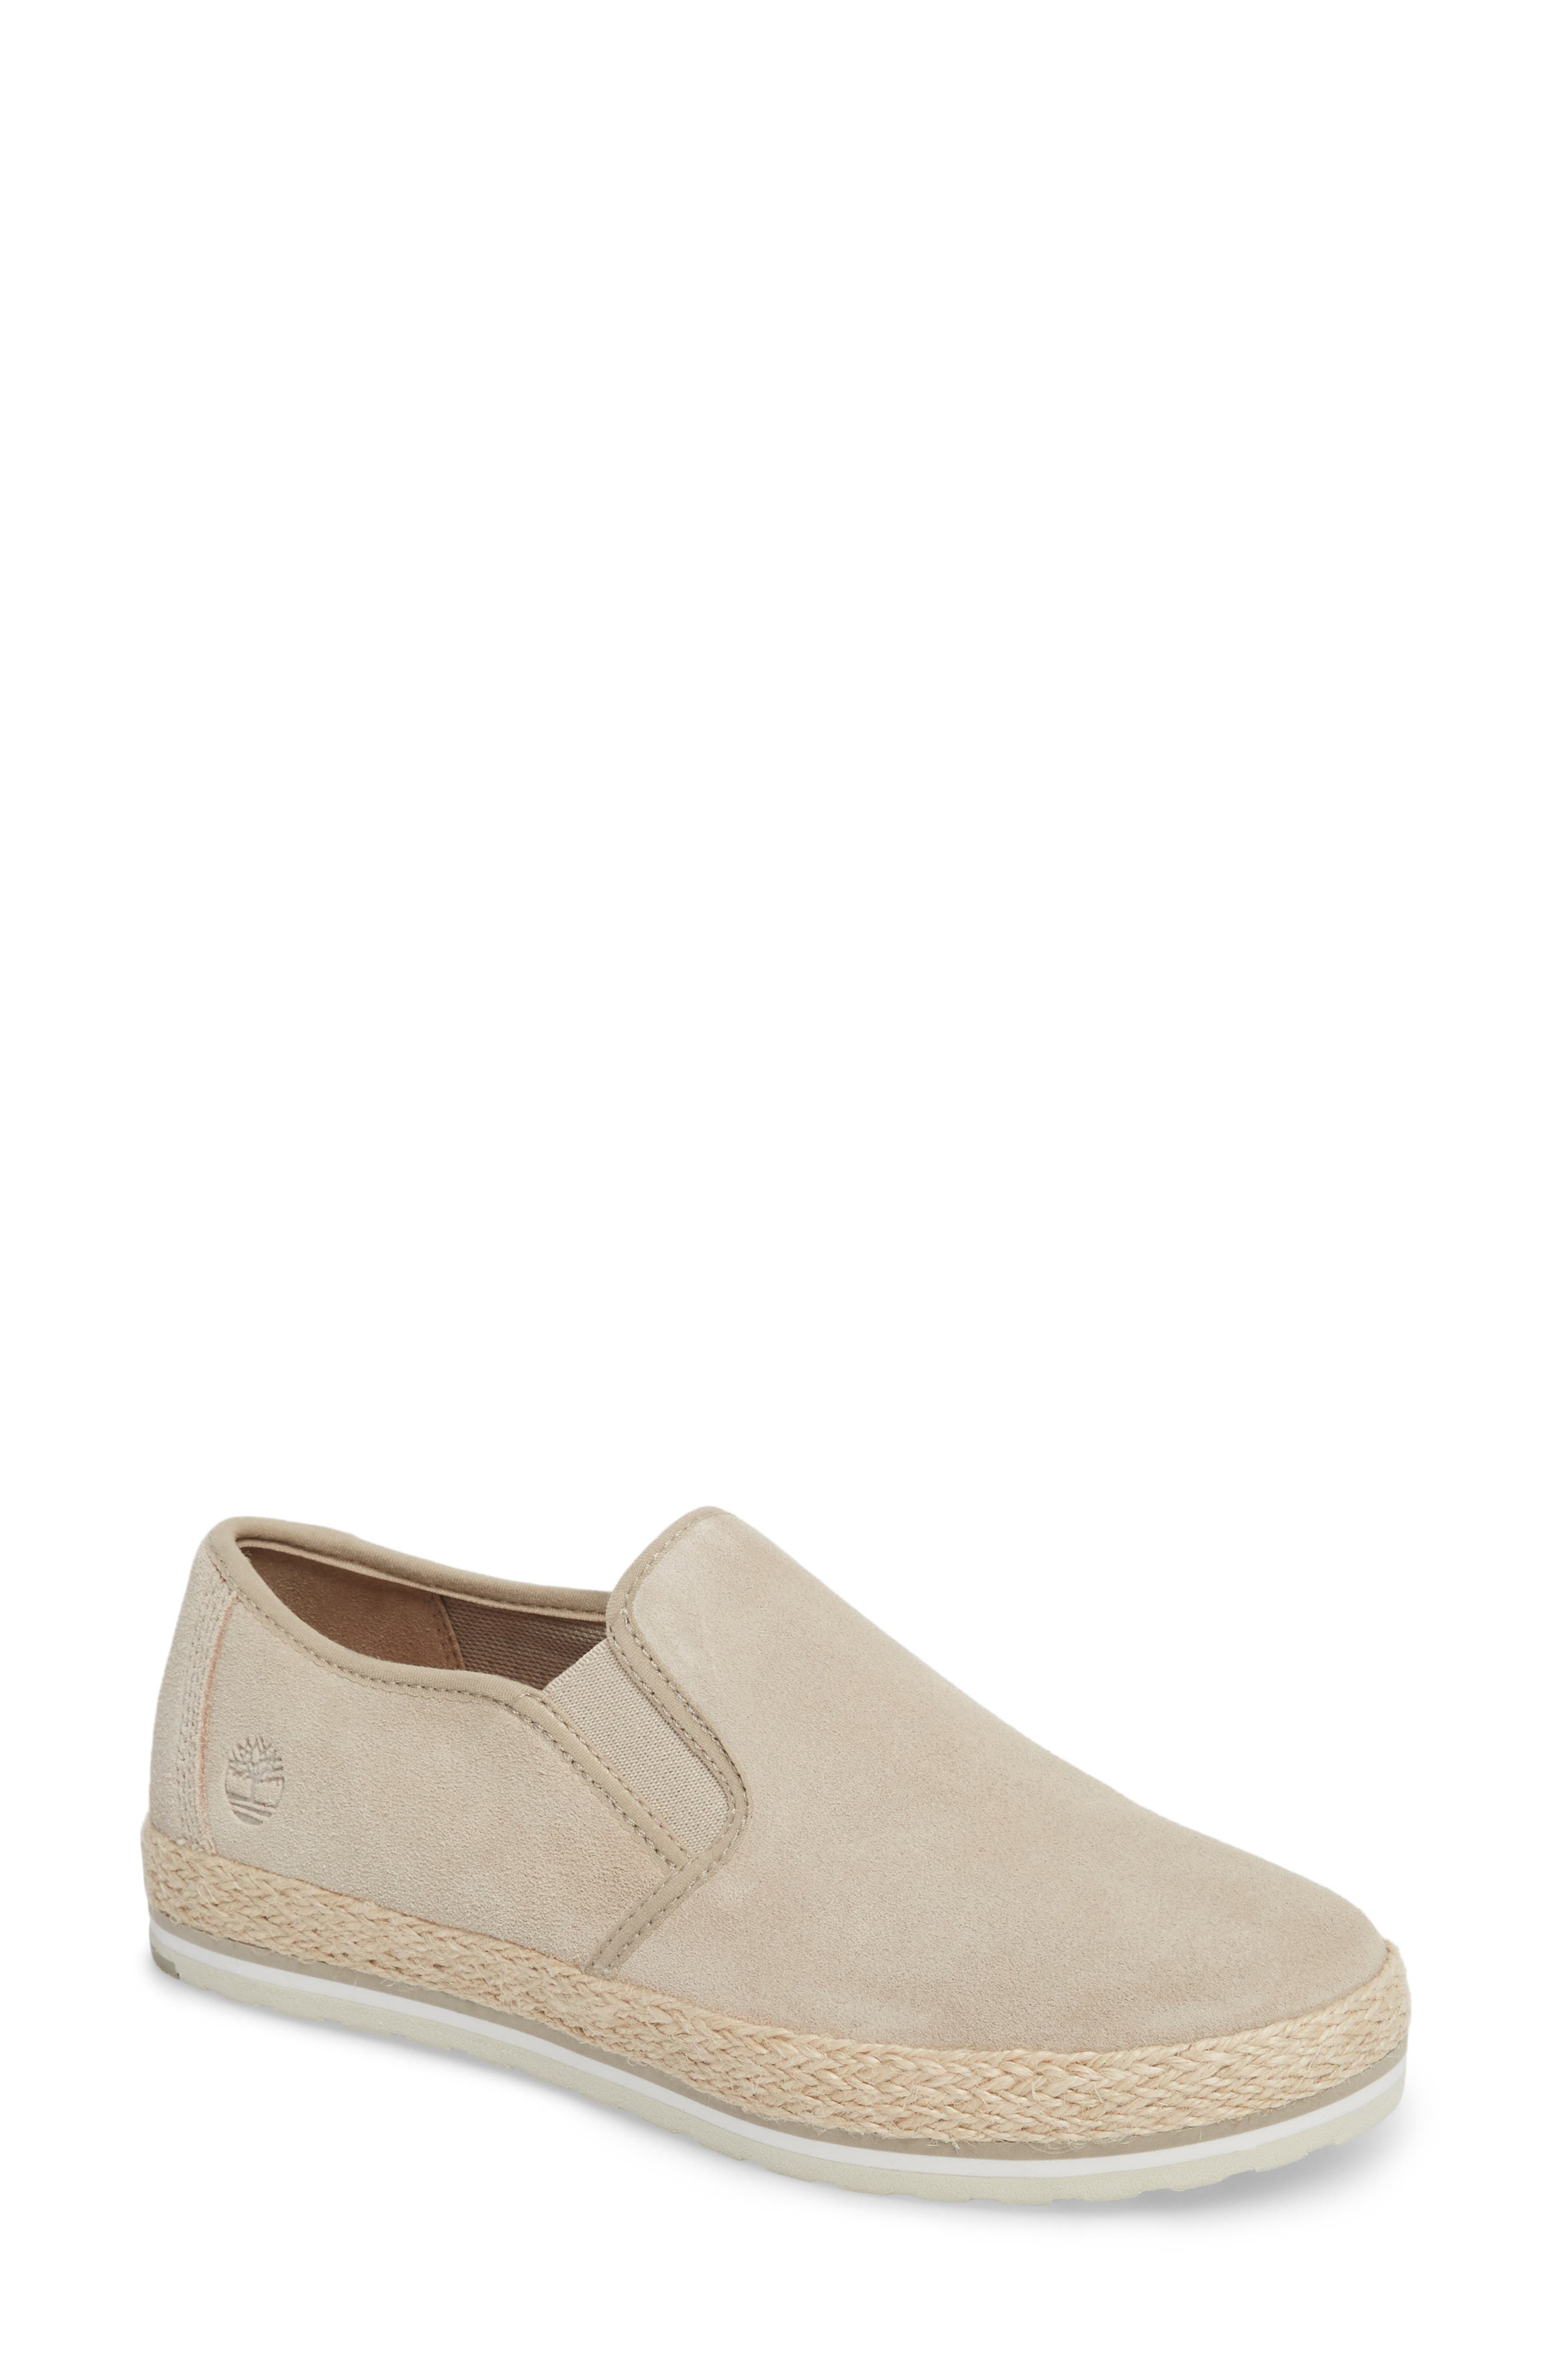 Eivissa Sea Slip-On Sneaker,                             Main thumbnail 1, color,                             LIGHT BEIGE LEATHER